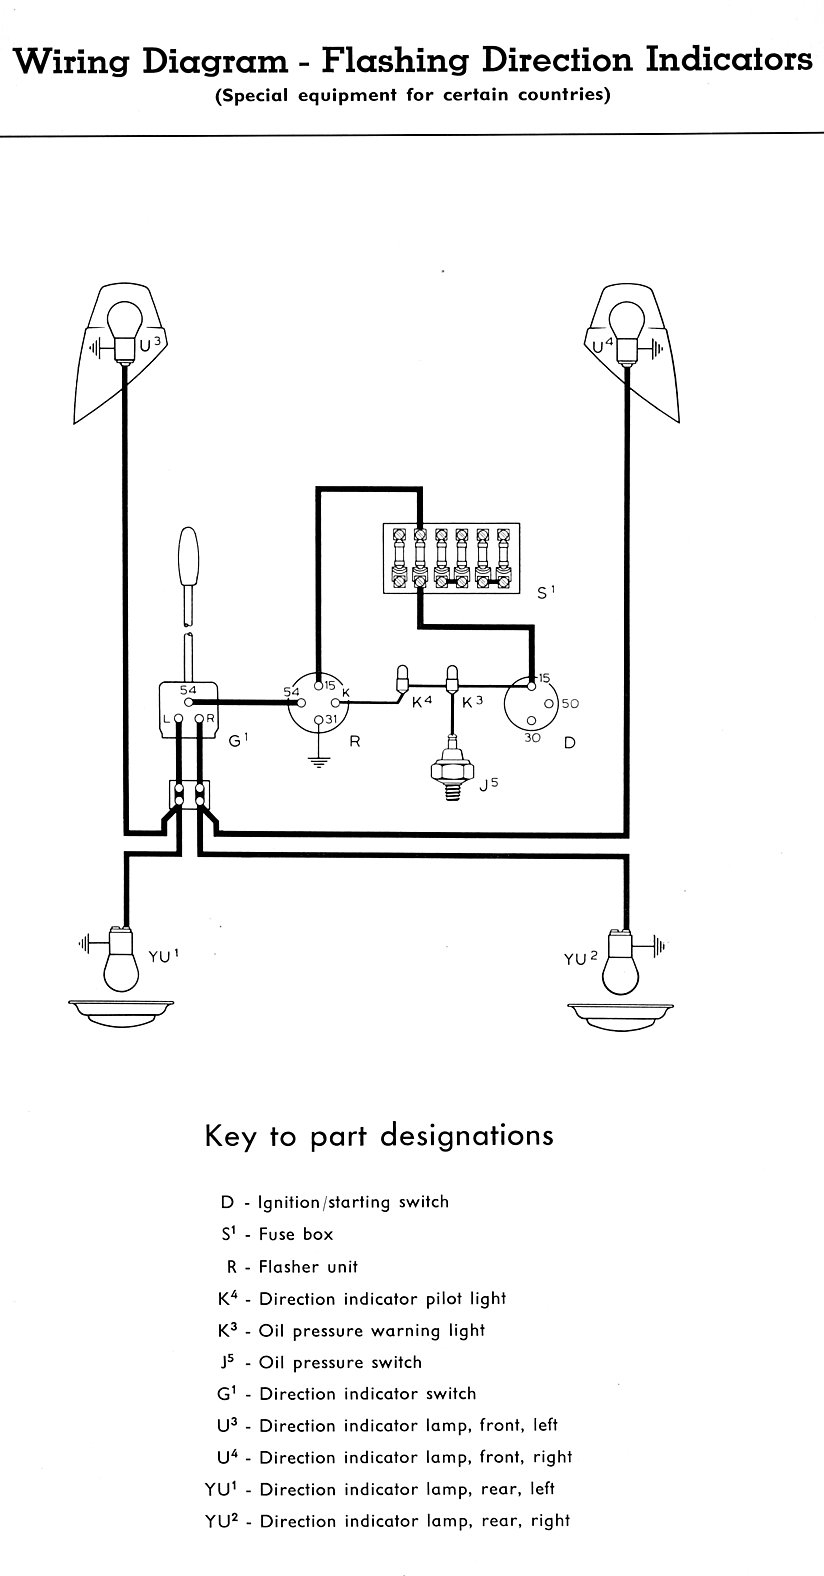 Thesamba :: Type 2 Wiring Diagrams - Brake And Turn Signal Wiring Diagram